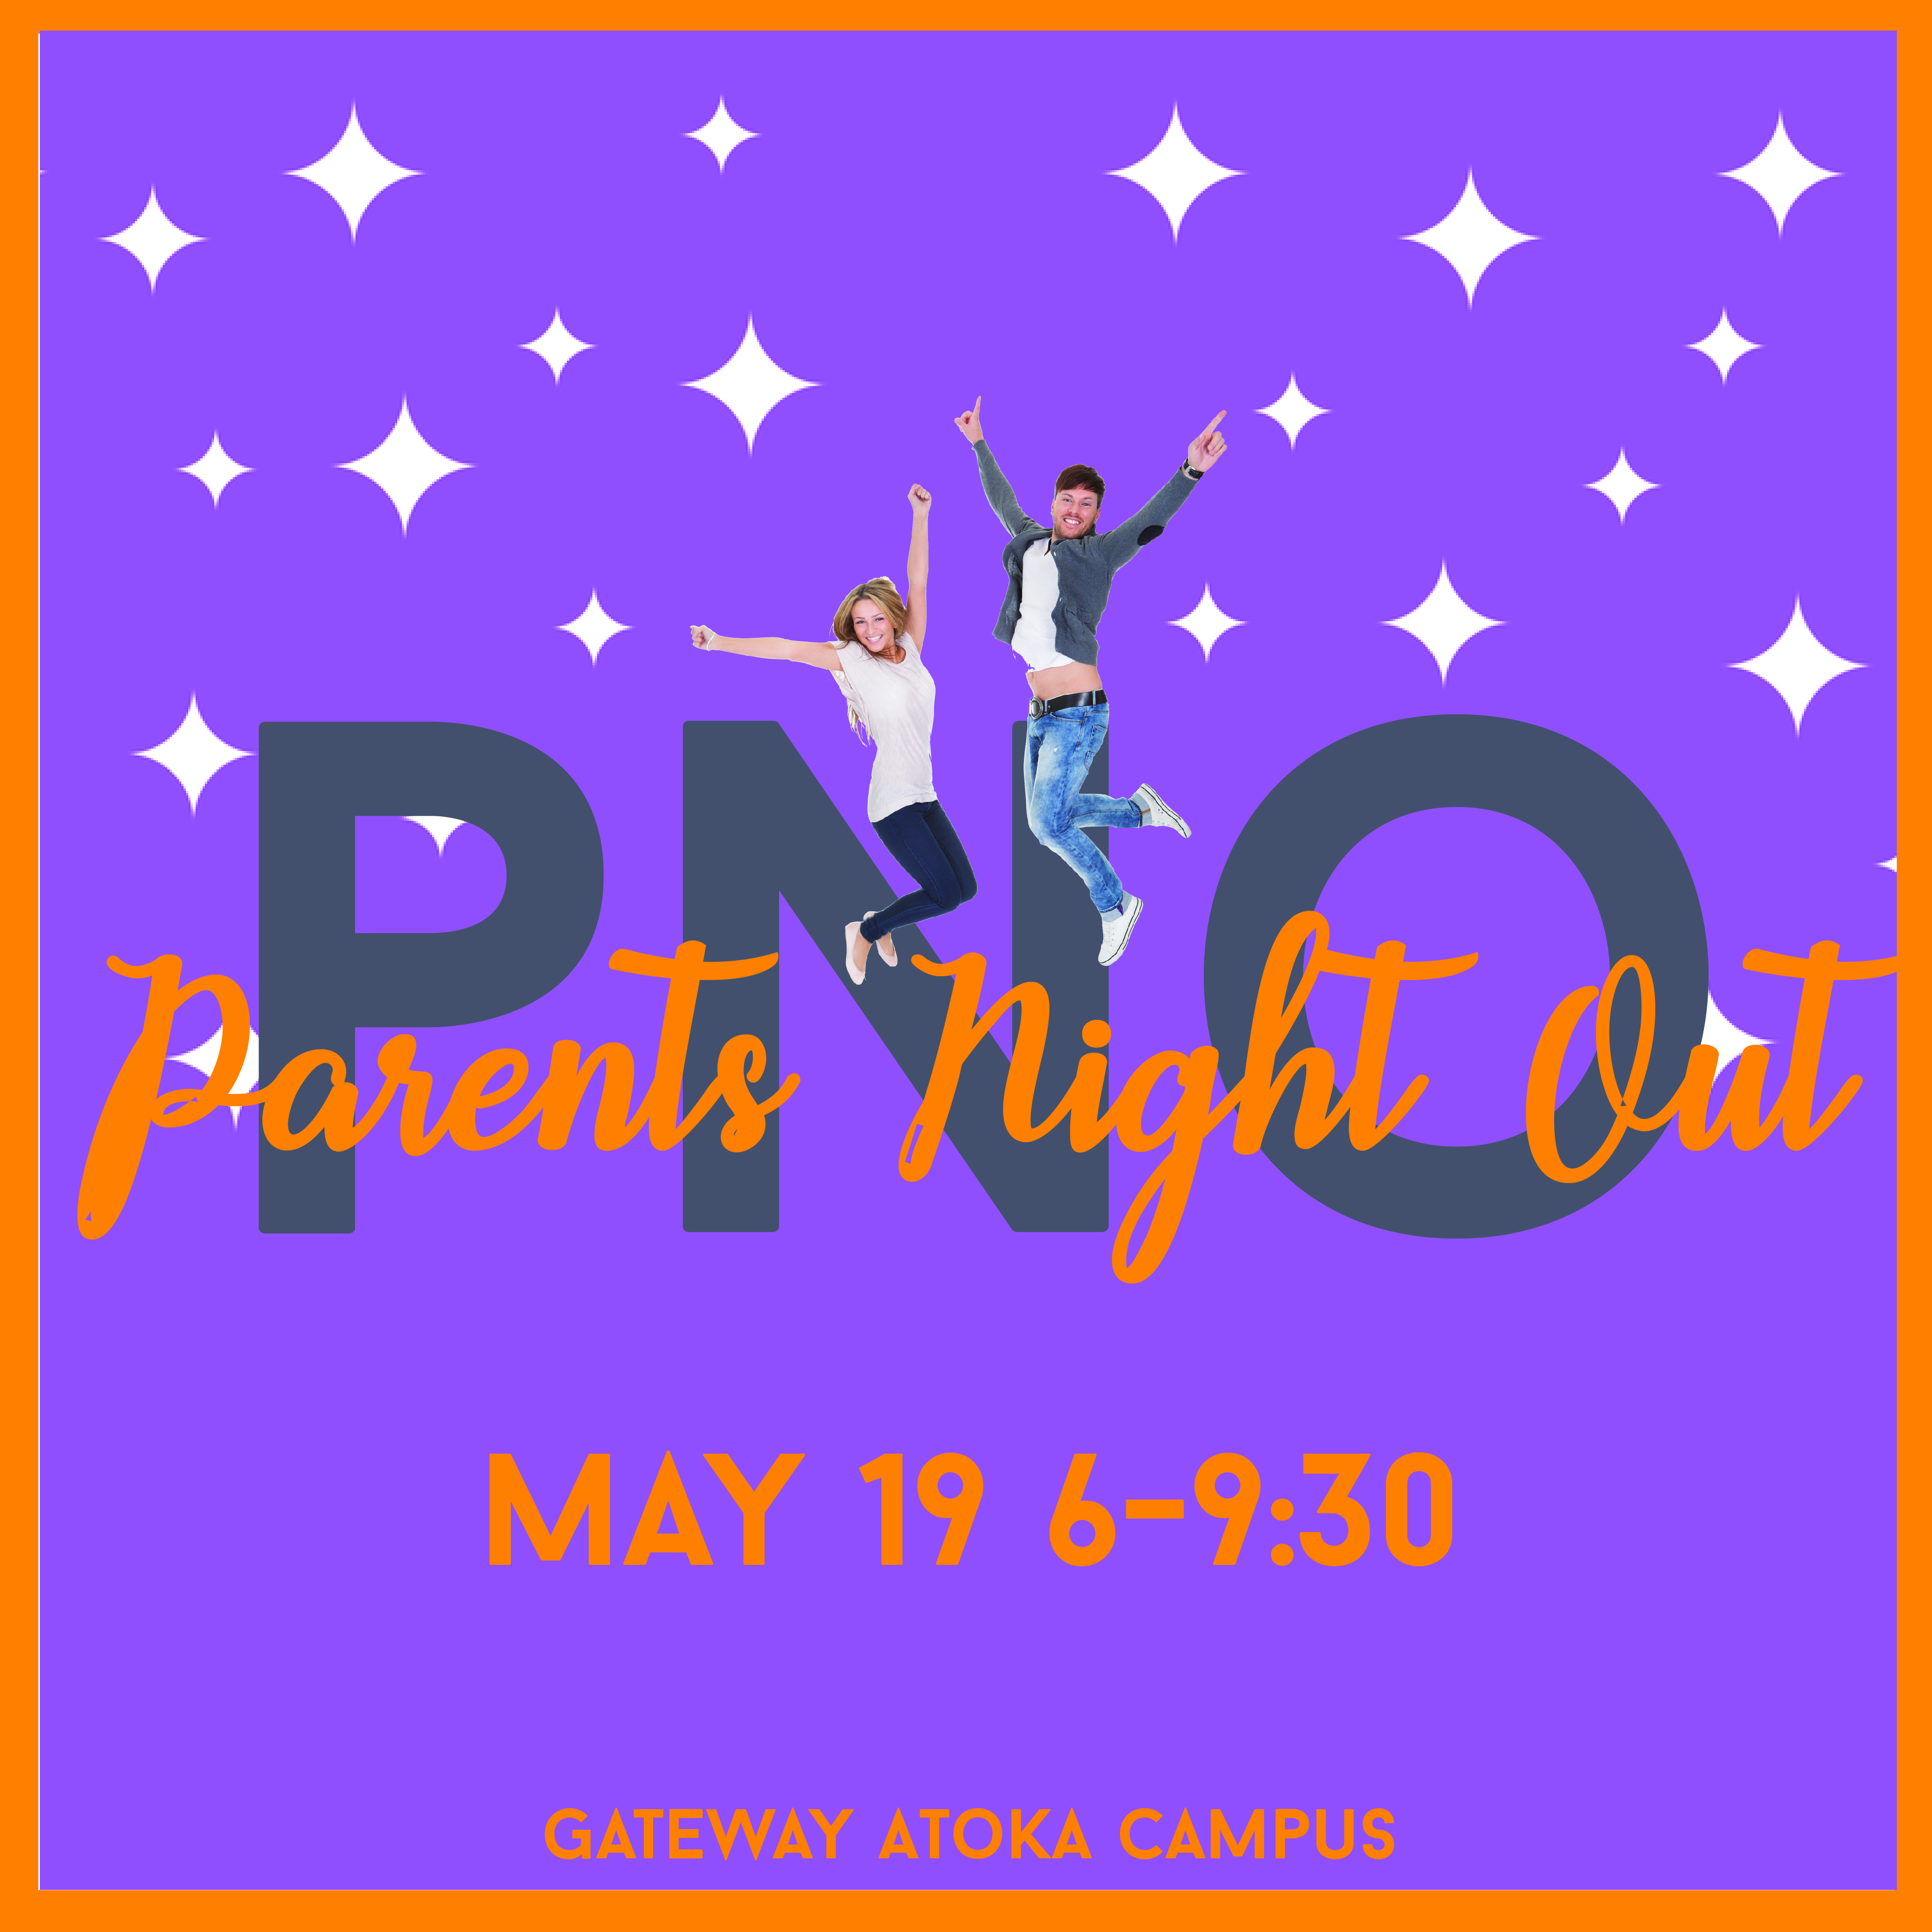 Pno may 19 facebook image